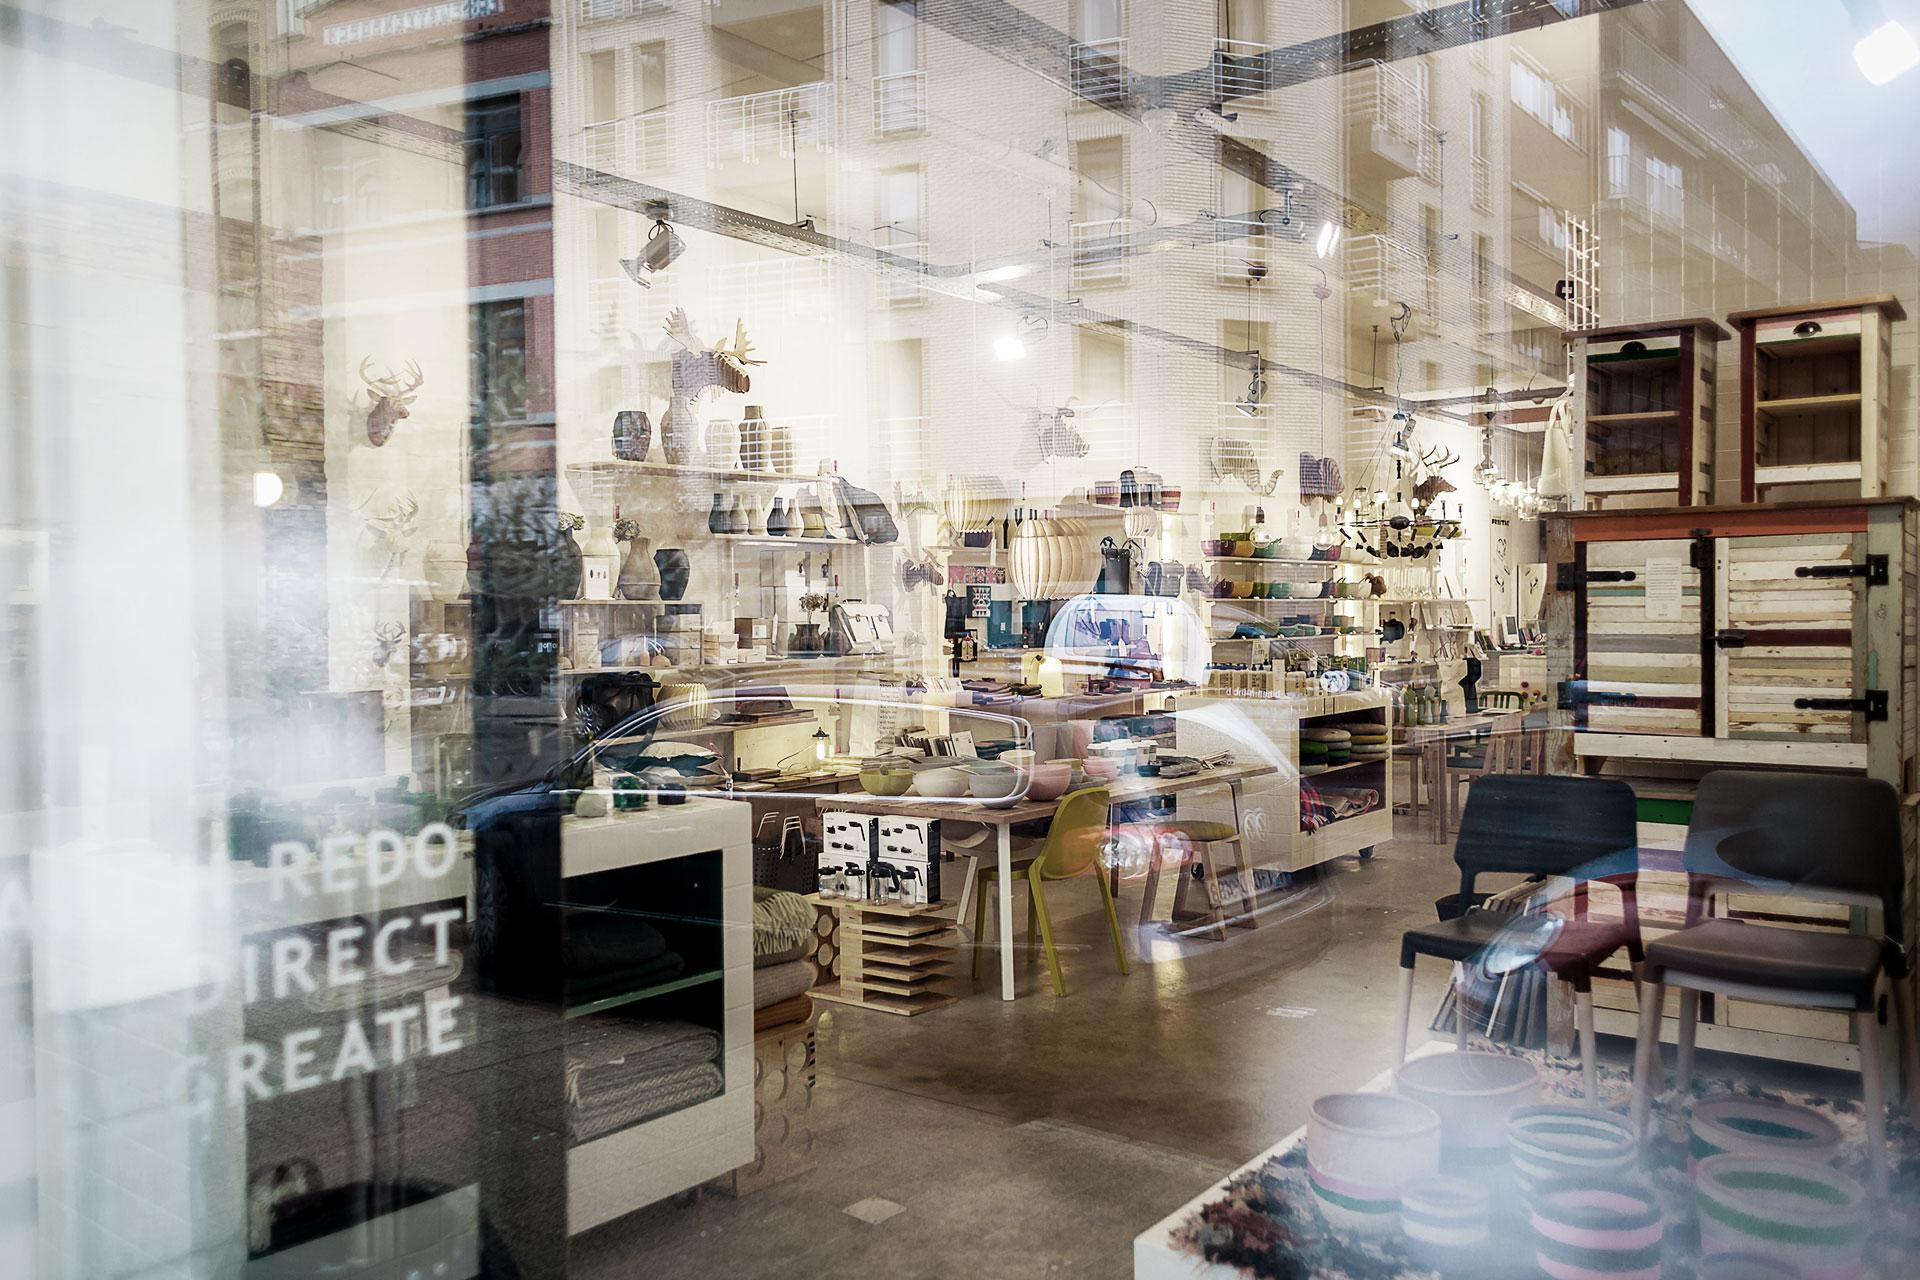 Meuble Belge Lille Quirky And Timeless Interior Objects Atelier Belge